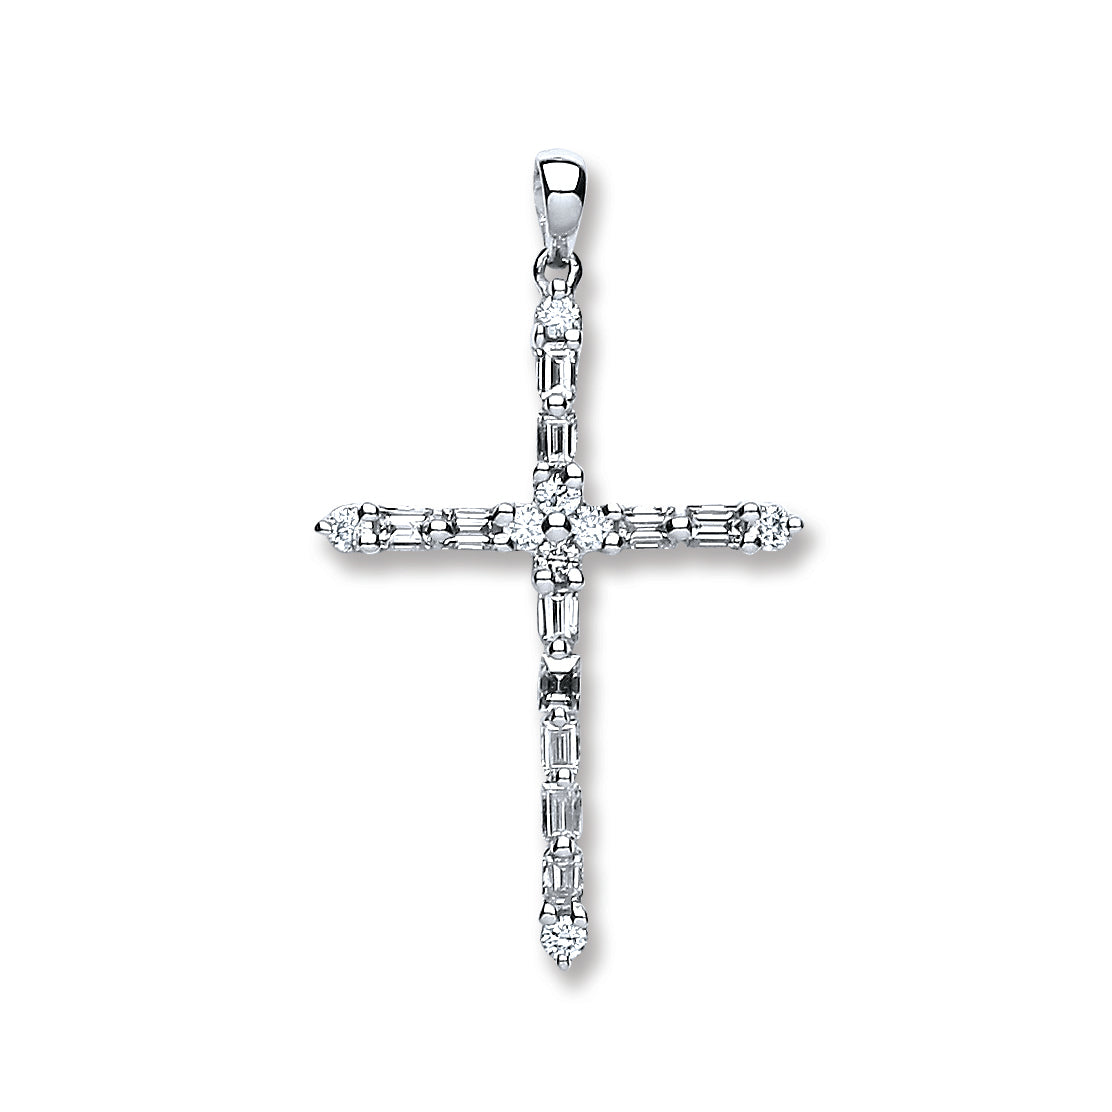 18ct white gold 044ct diamond cross pendant tgc dpd0382 gold 18ct white gold 044ct diamond cross pendant tgc dpd0382 mozeypictures Gallery